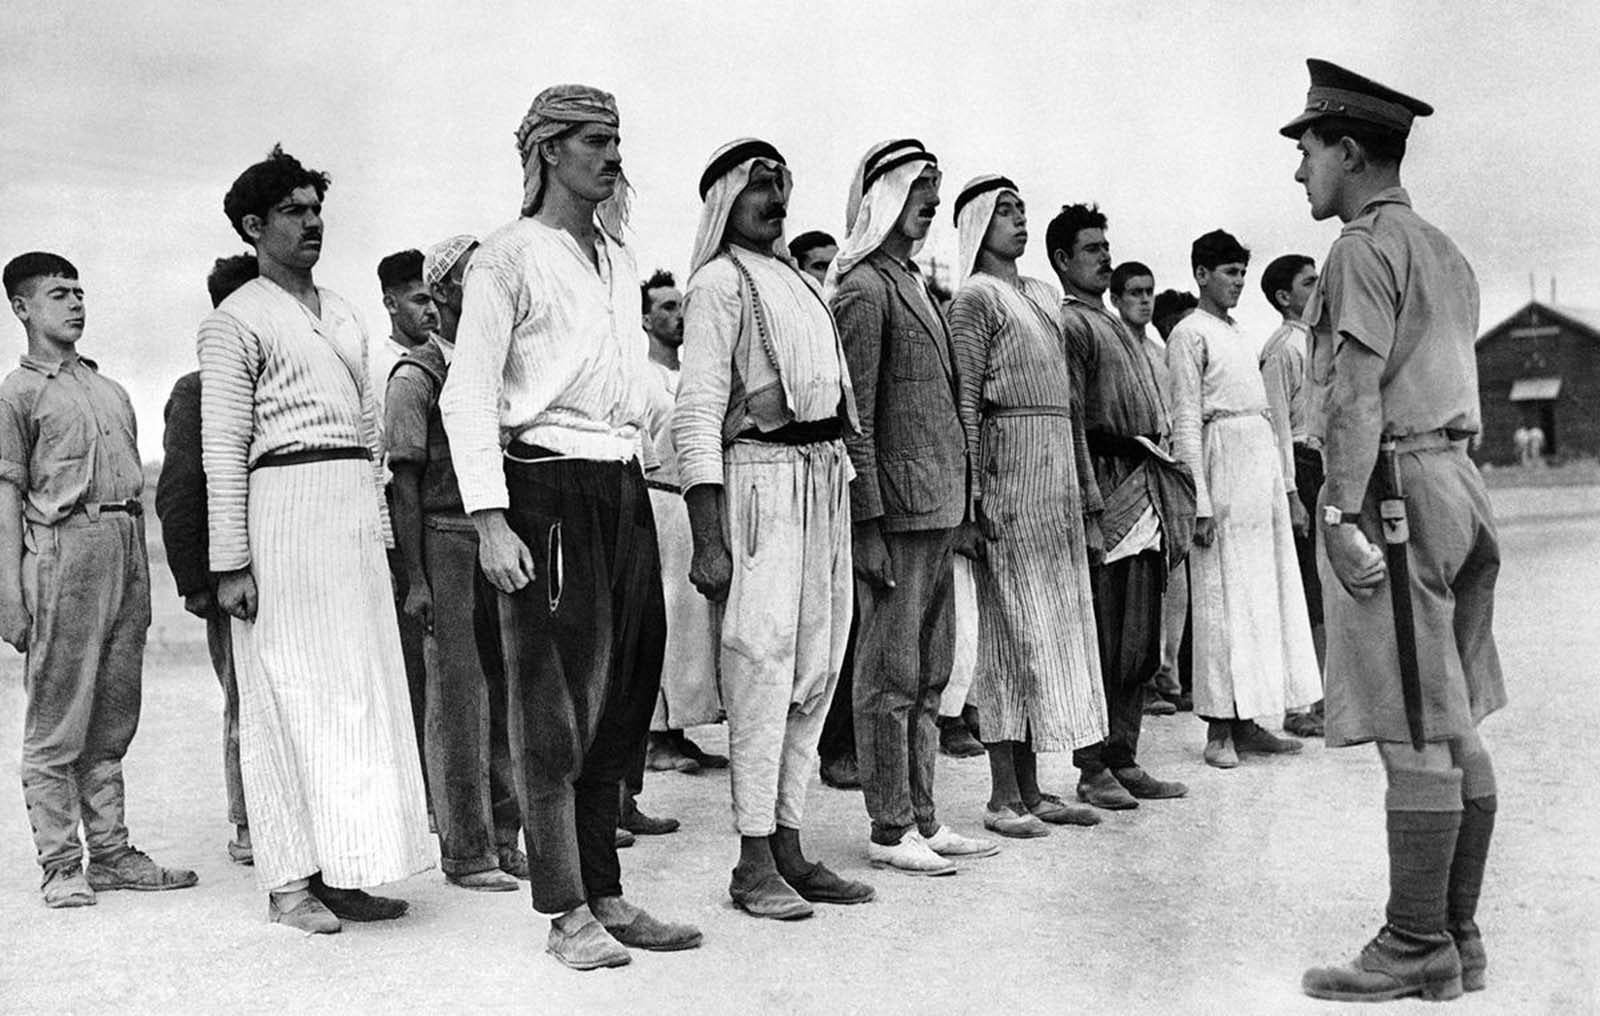 These Arab recruits line up in a barracks square in the British Mandate of Palestine, on December 28, 1940, for their first drill under a British solider. Some 6,000 Palestinian Arabs signed up with the British Army during the course of World War II.